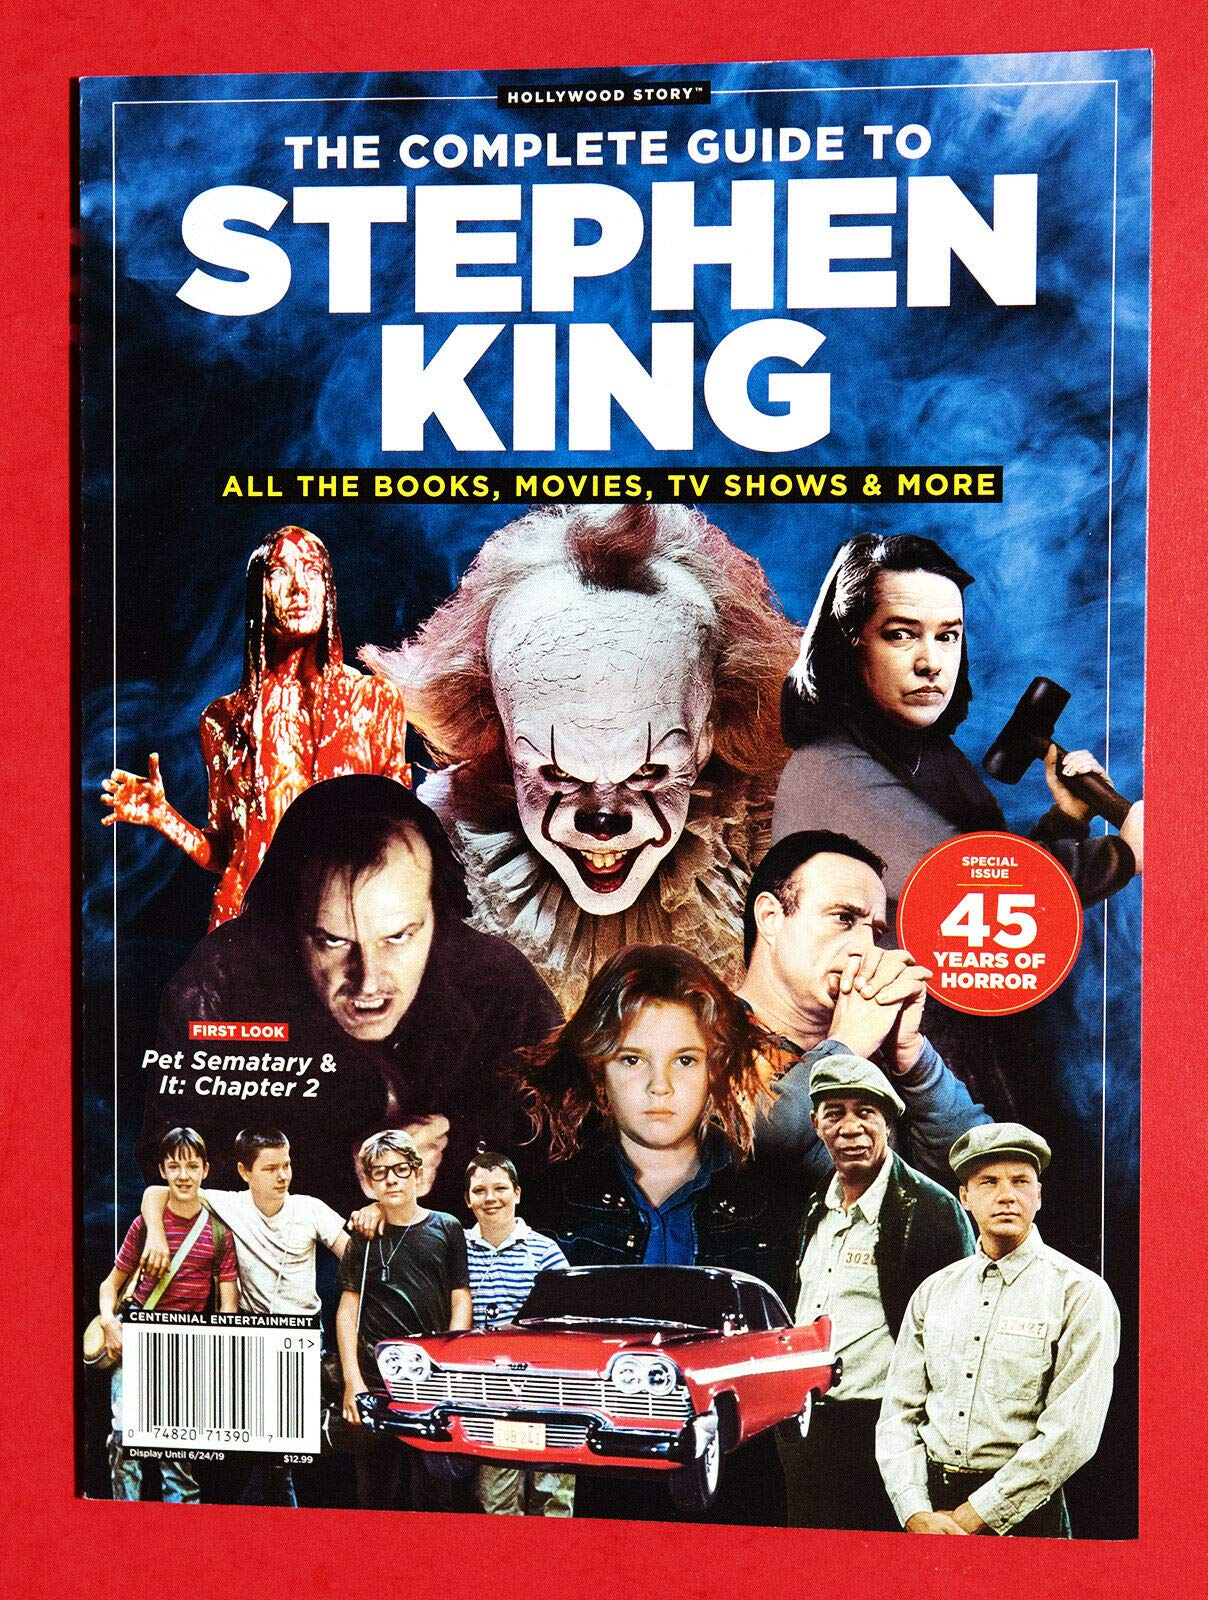 Hollywood Story The Complete Guide to STEPHEN KING